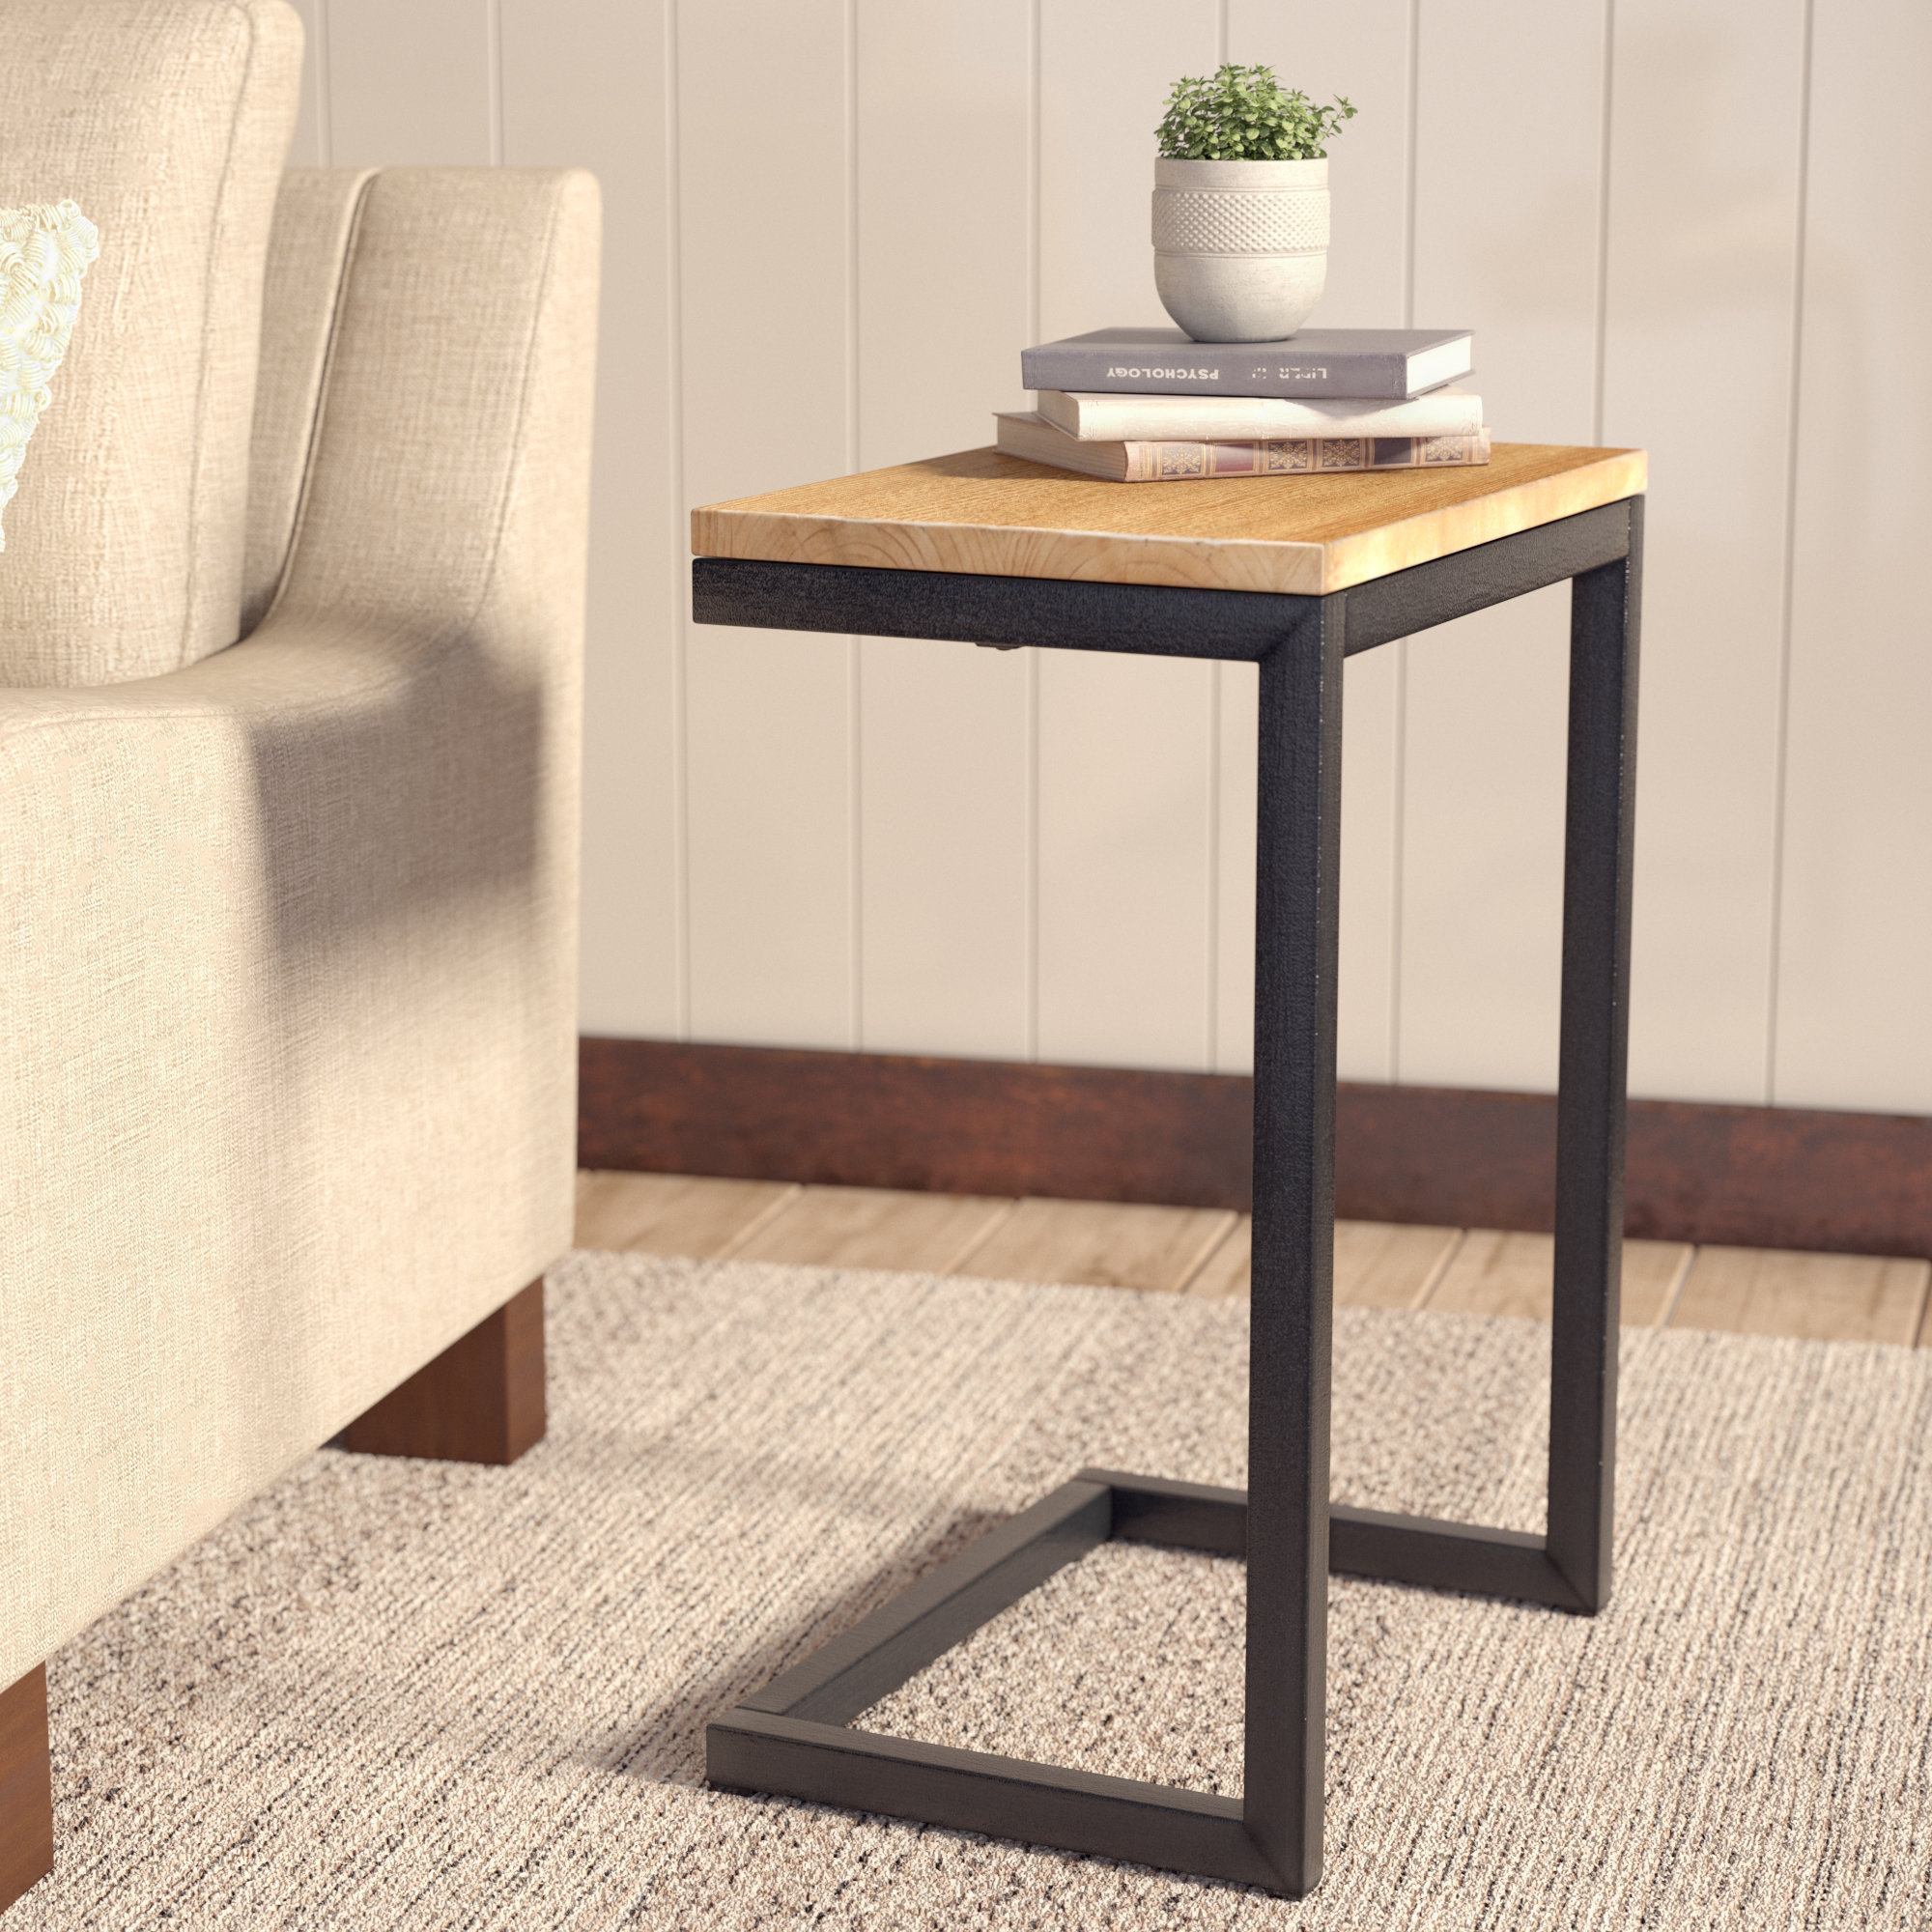 laurel foundry modern farmhouse nayara antique end table reviews accent sofa ikea wooden storage box acacia furniture round dining cover rattan and chairs bunnings outdoor desk